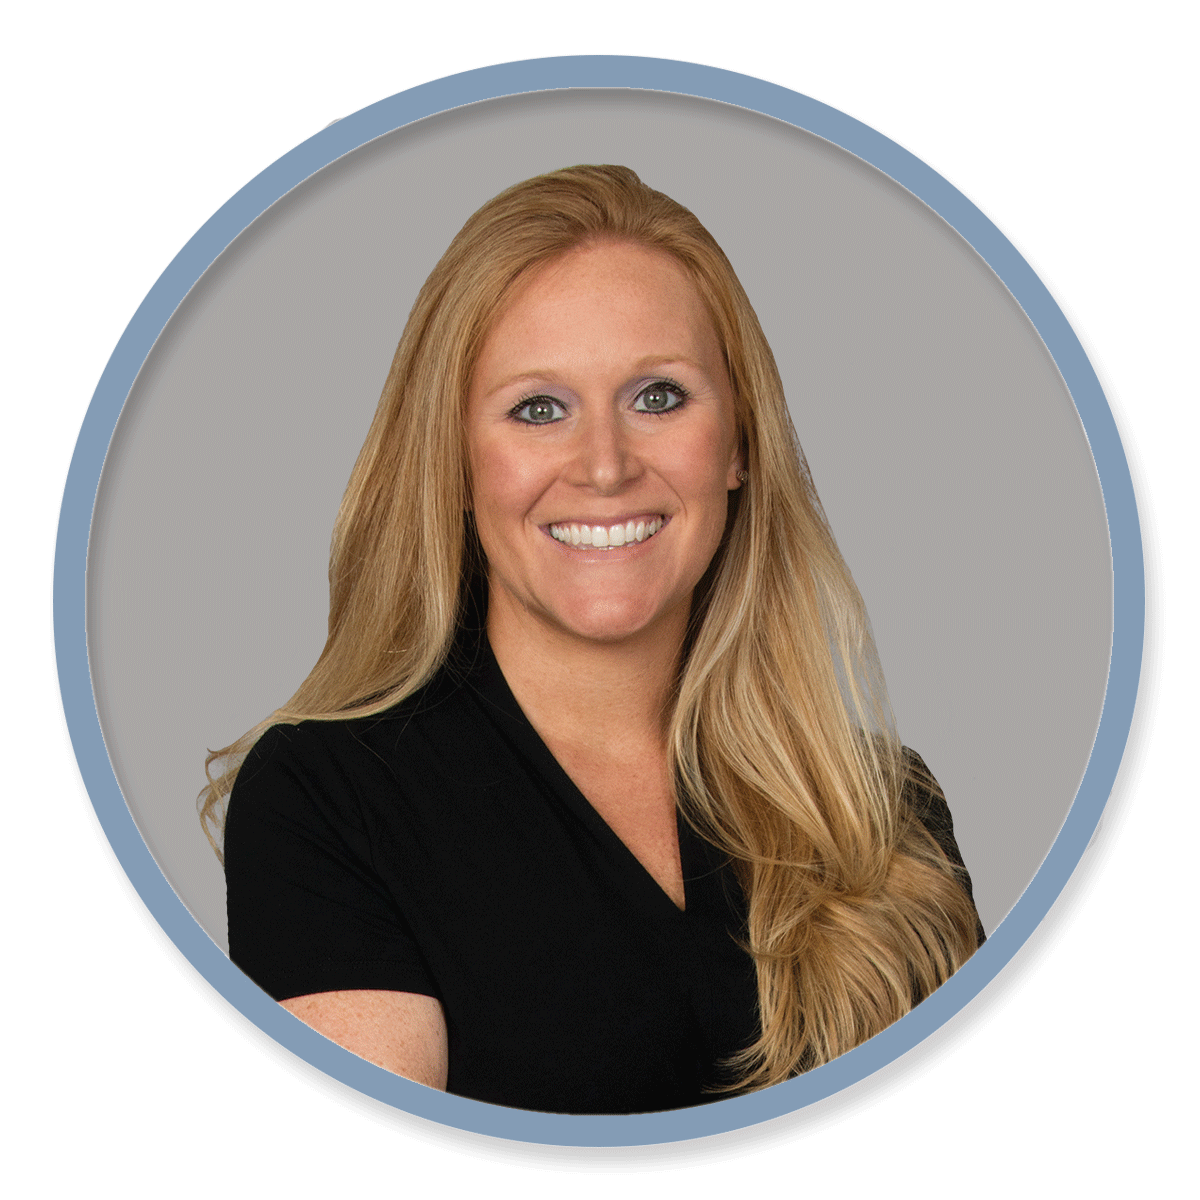 An image of provider Kara Smith, DDS | Dentistry